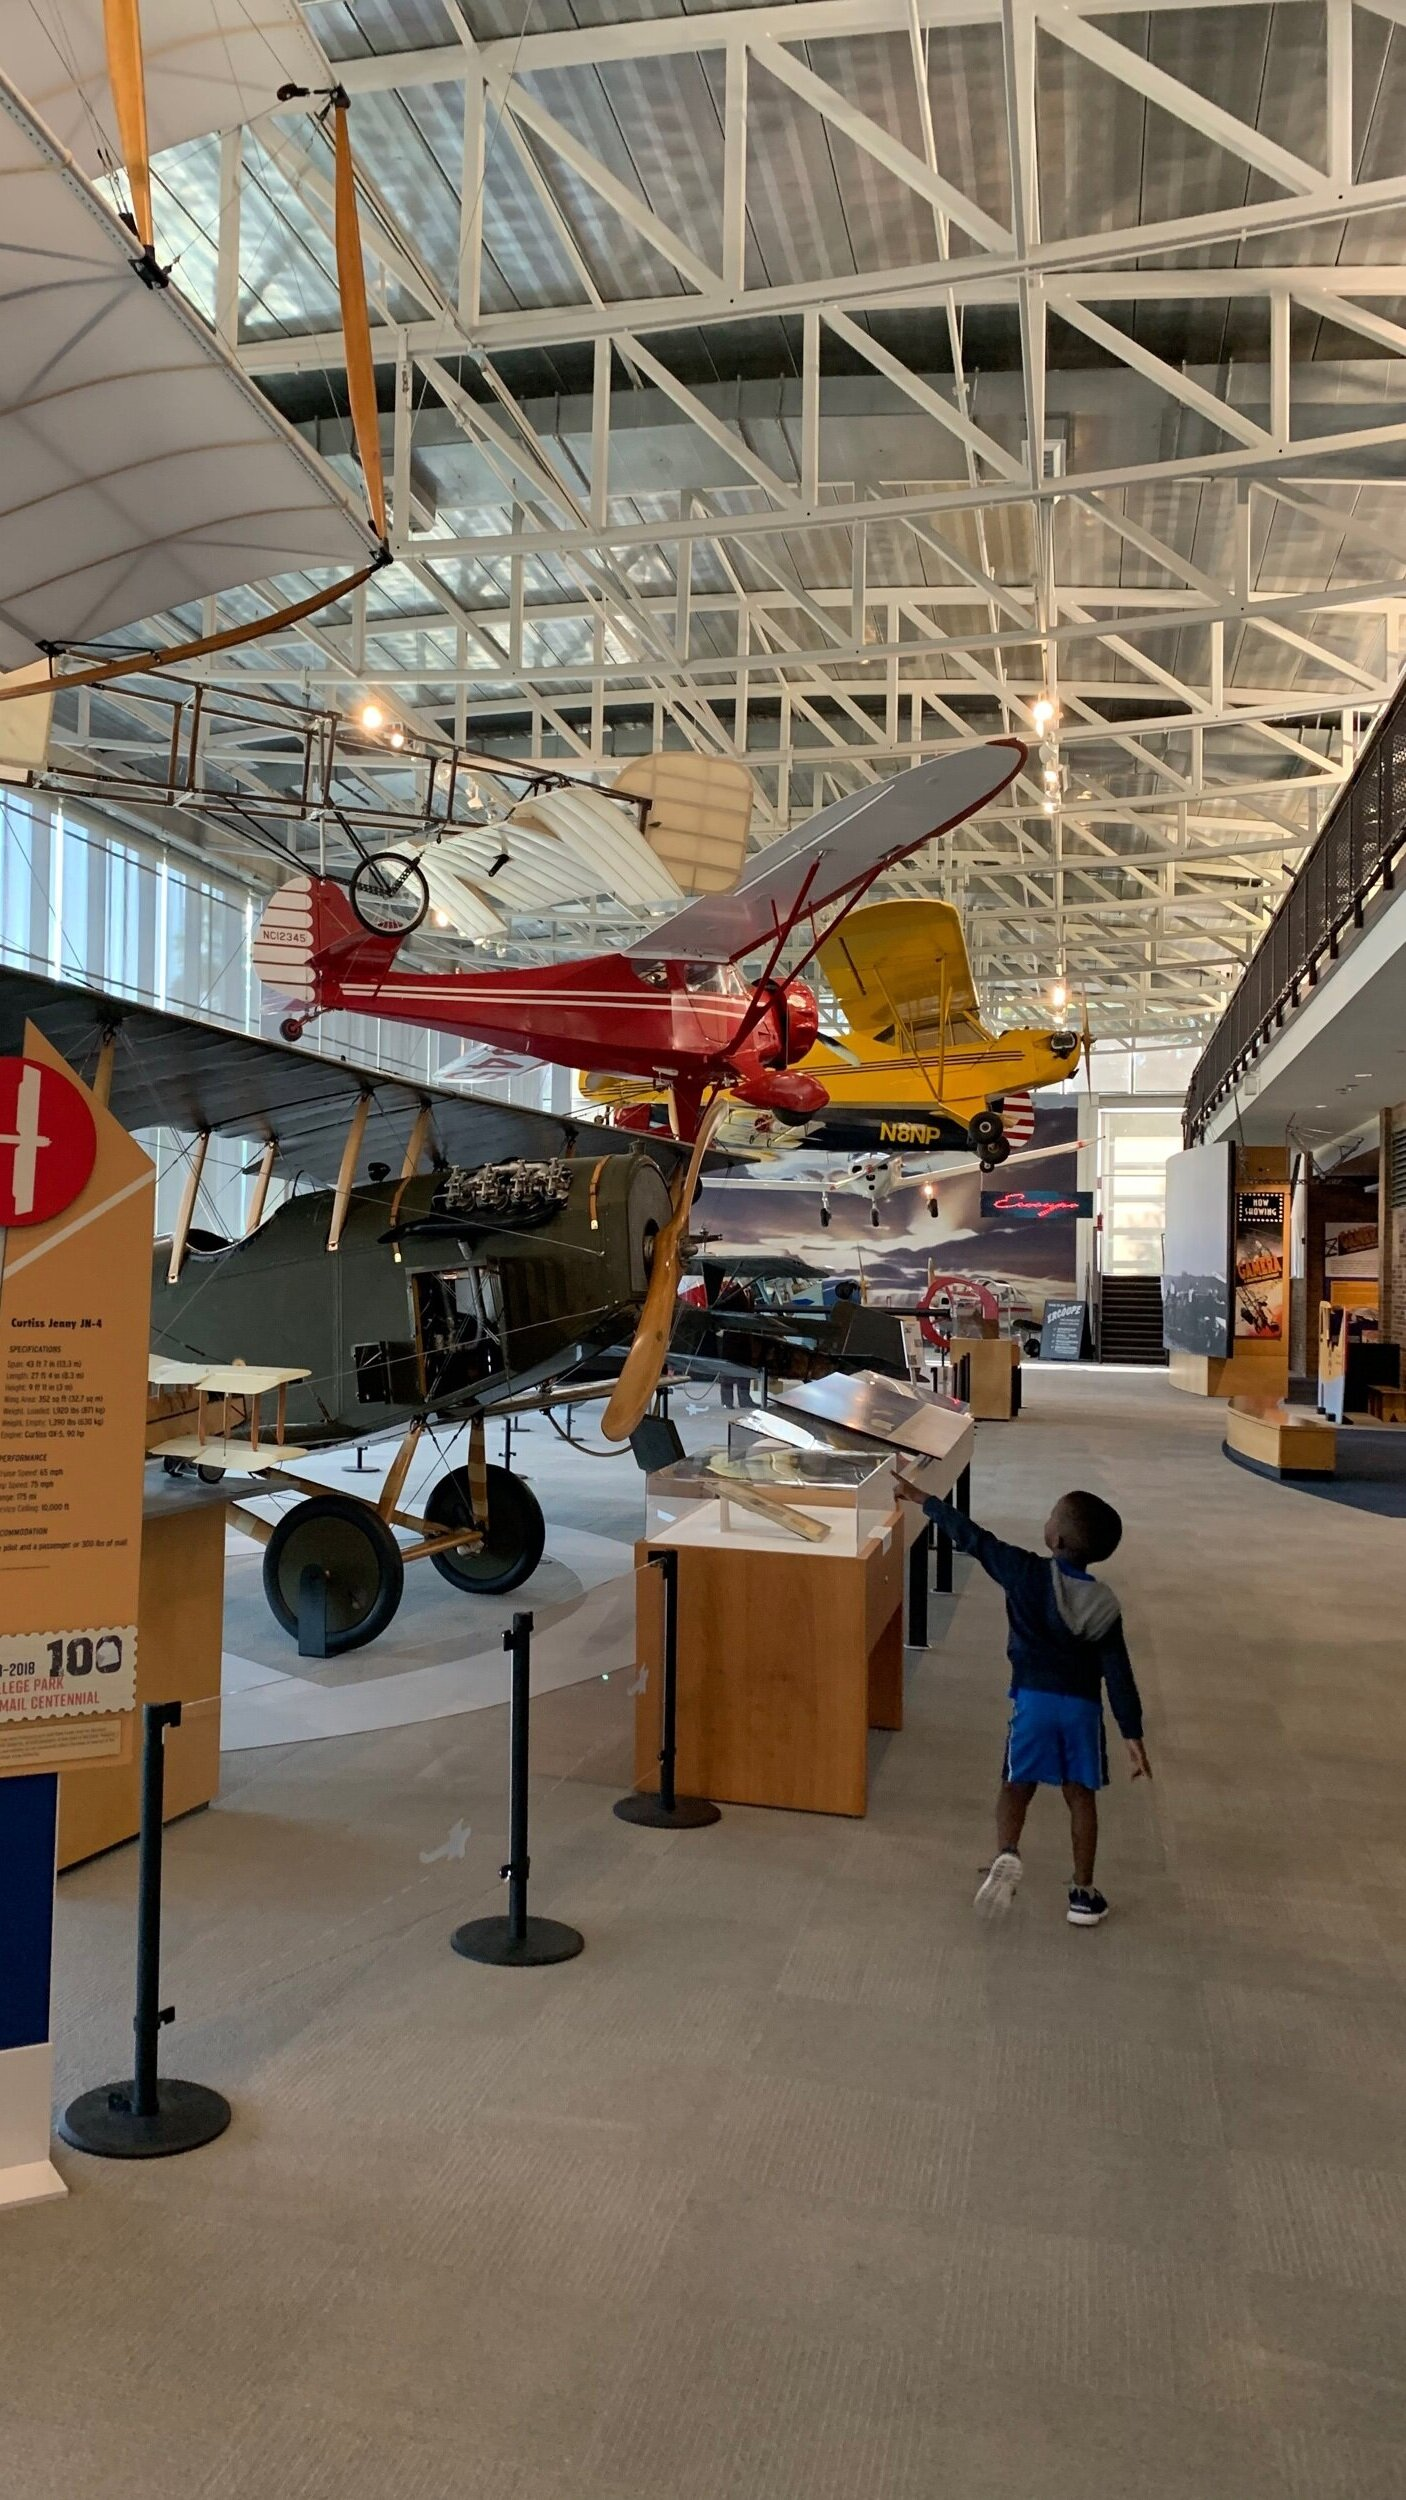 Planes suspended with the ceiling of the College Park Aviation Museum